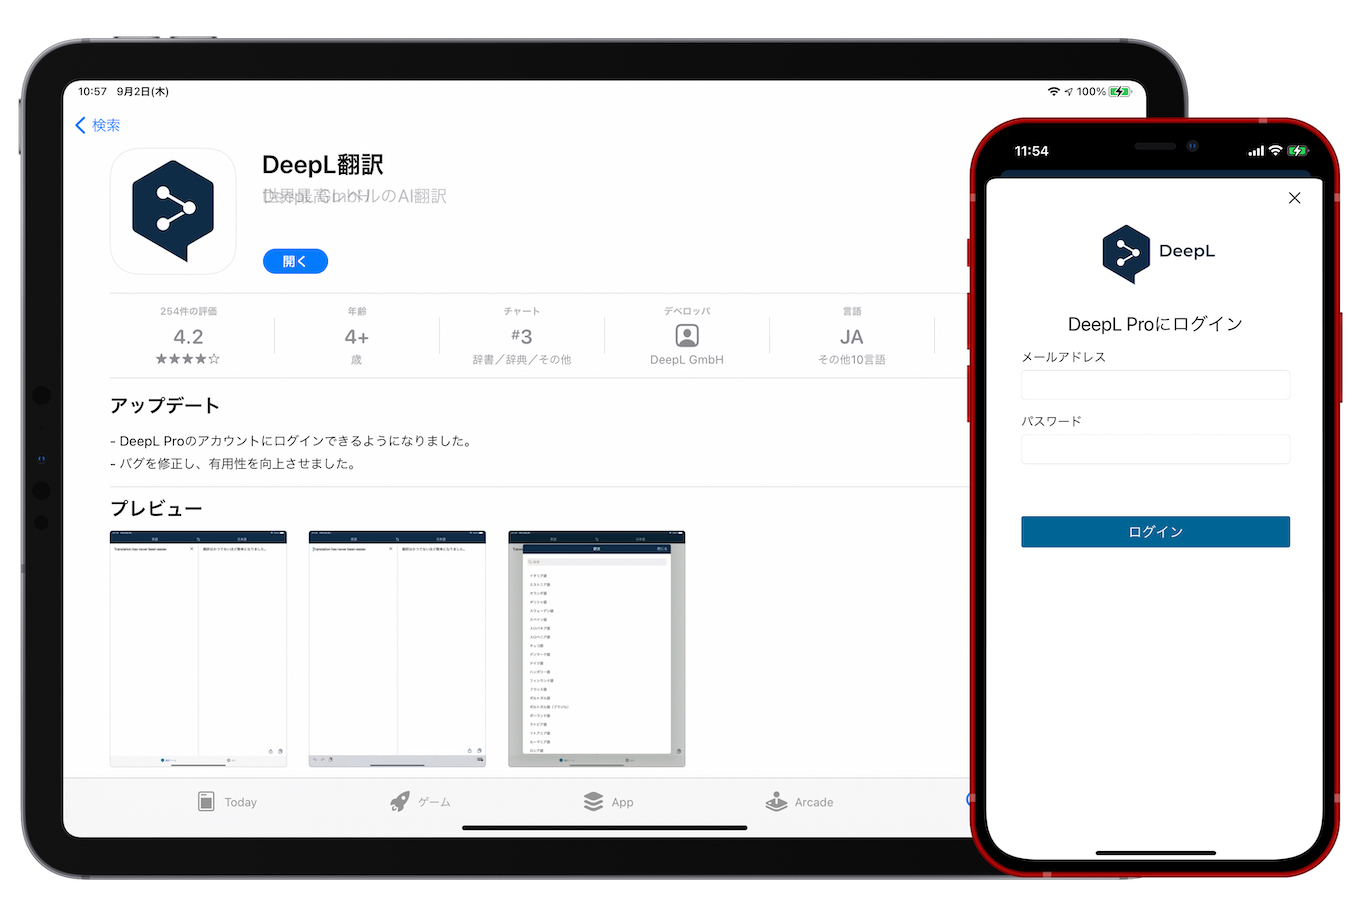 DeepL for iOS support deepl pro